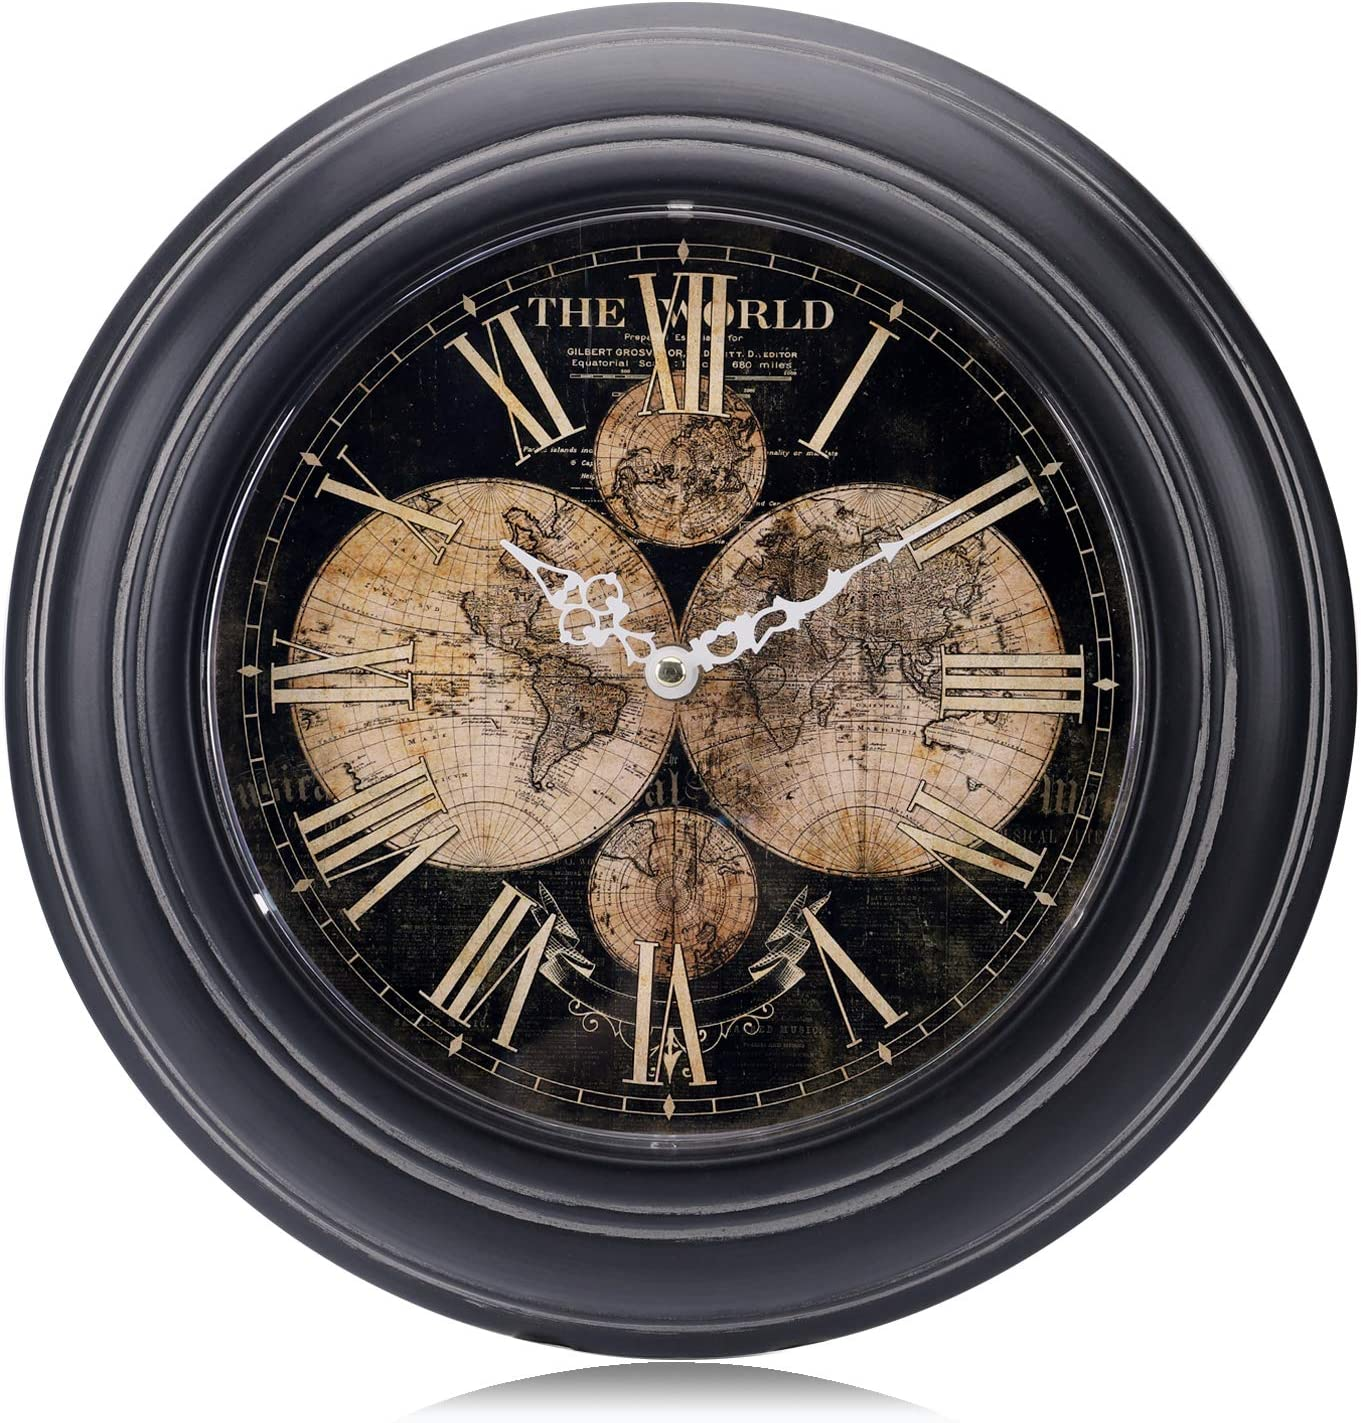 Lafocuse Metal World Map Wall Clock Roman Numerals Silent Black Quartz Clocks for Living Room Lounge Bedrooms 13""